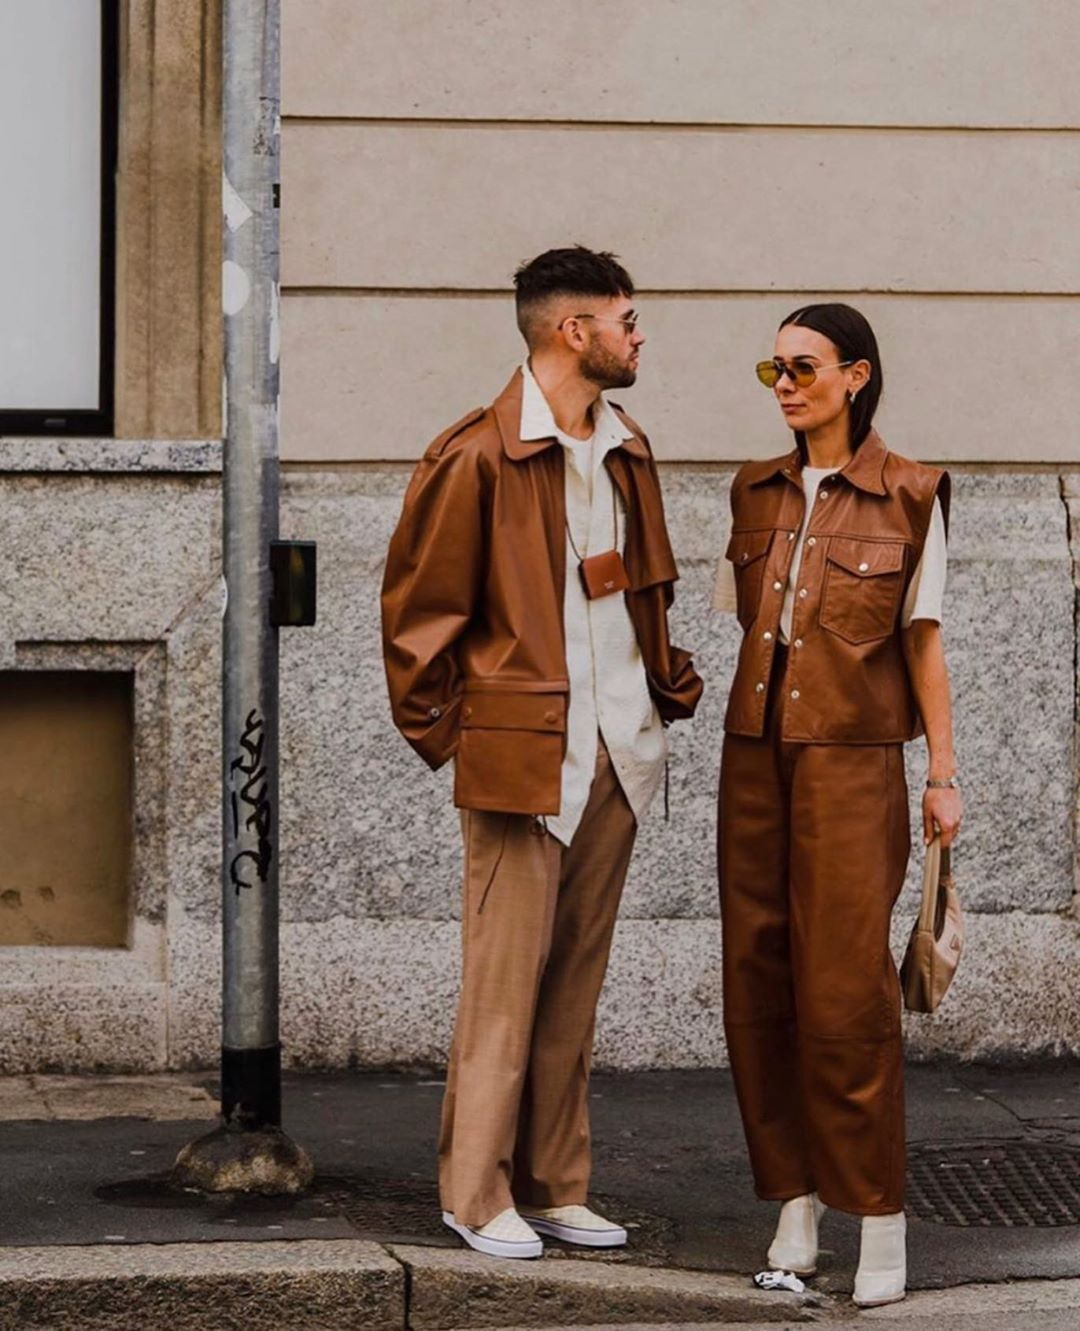 Behind The Scenes By lessiswore | Streetwear men outfits, Couple outfits,  Stylish couple